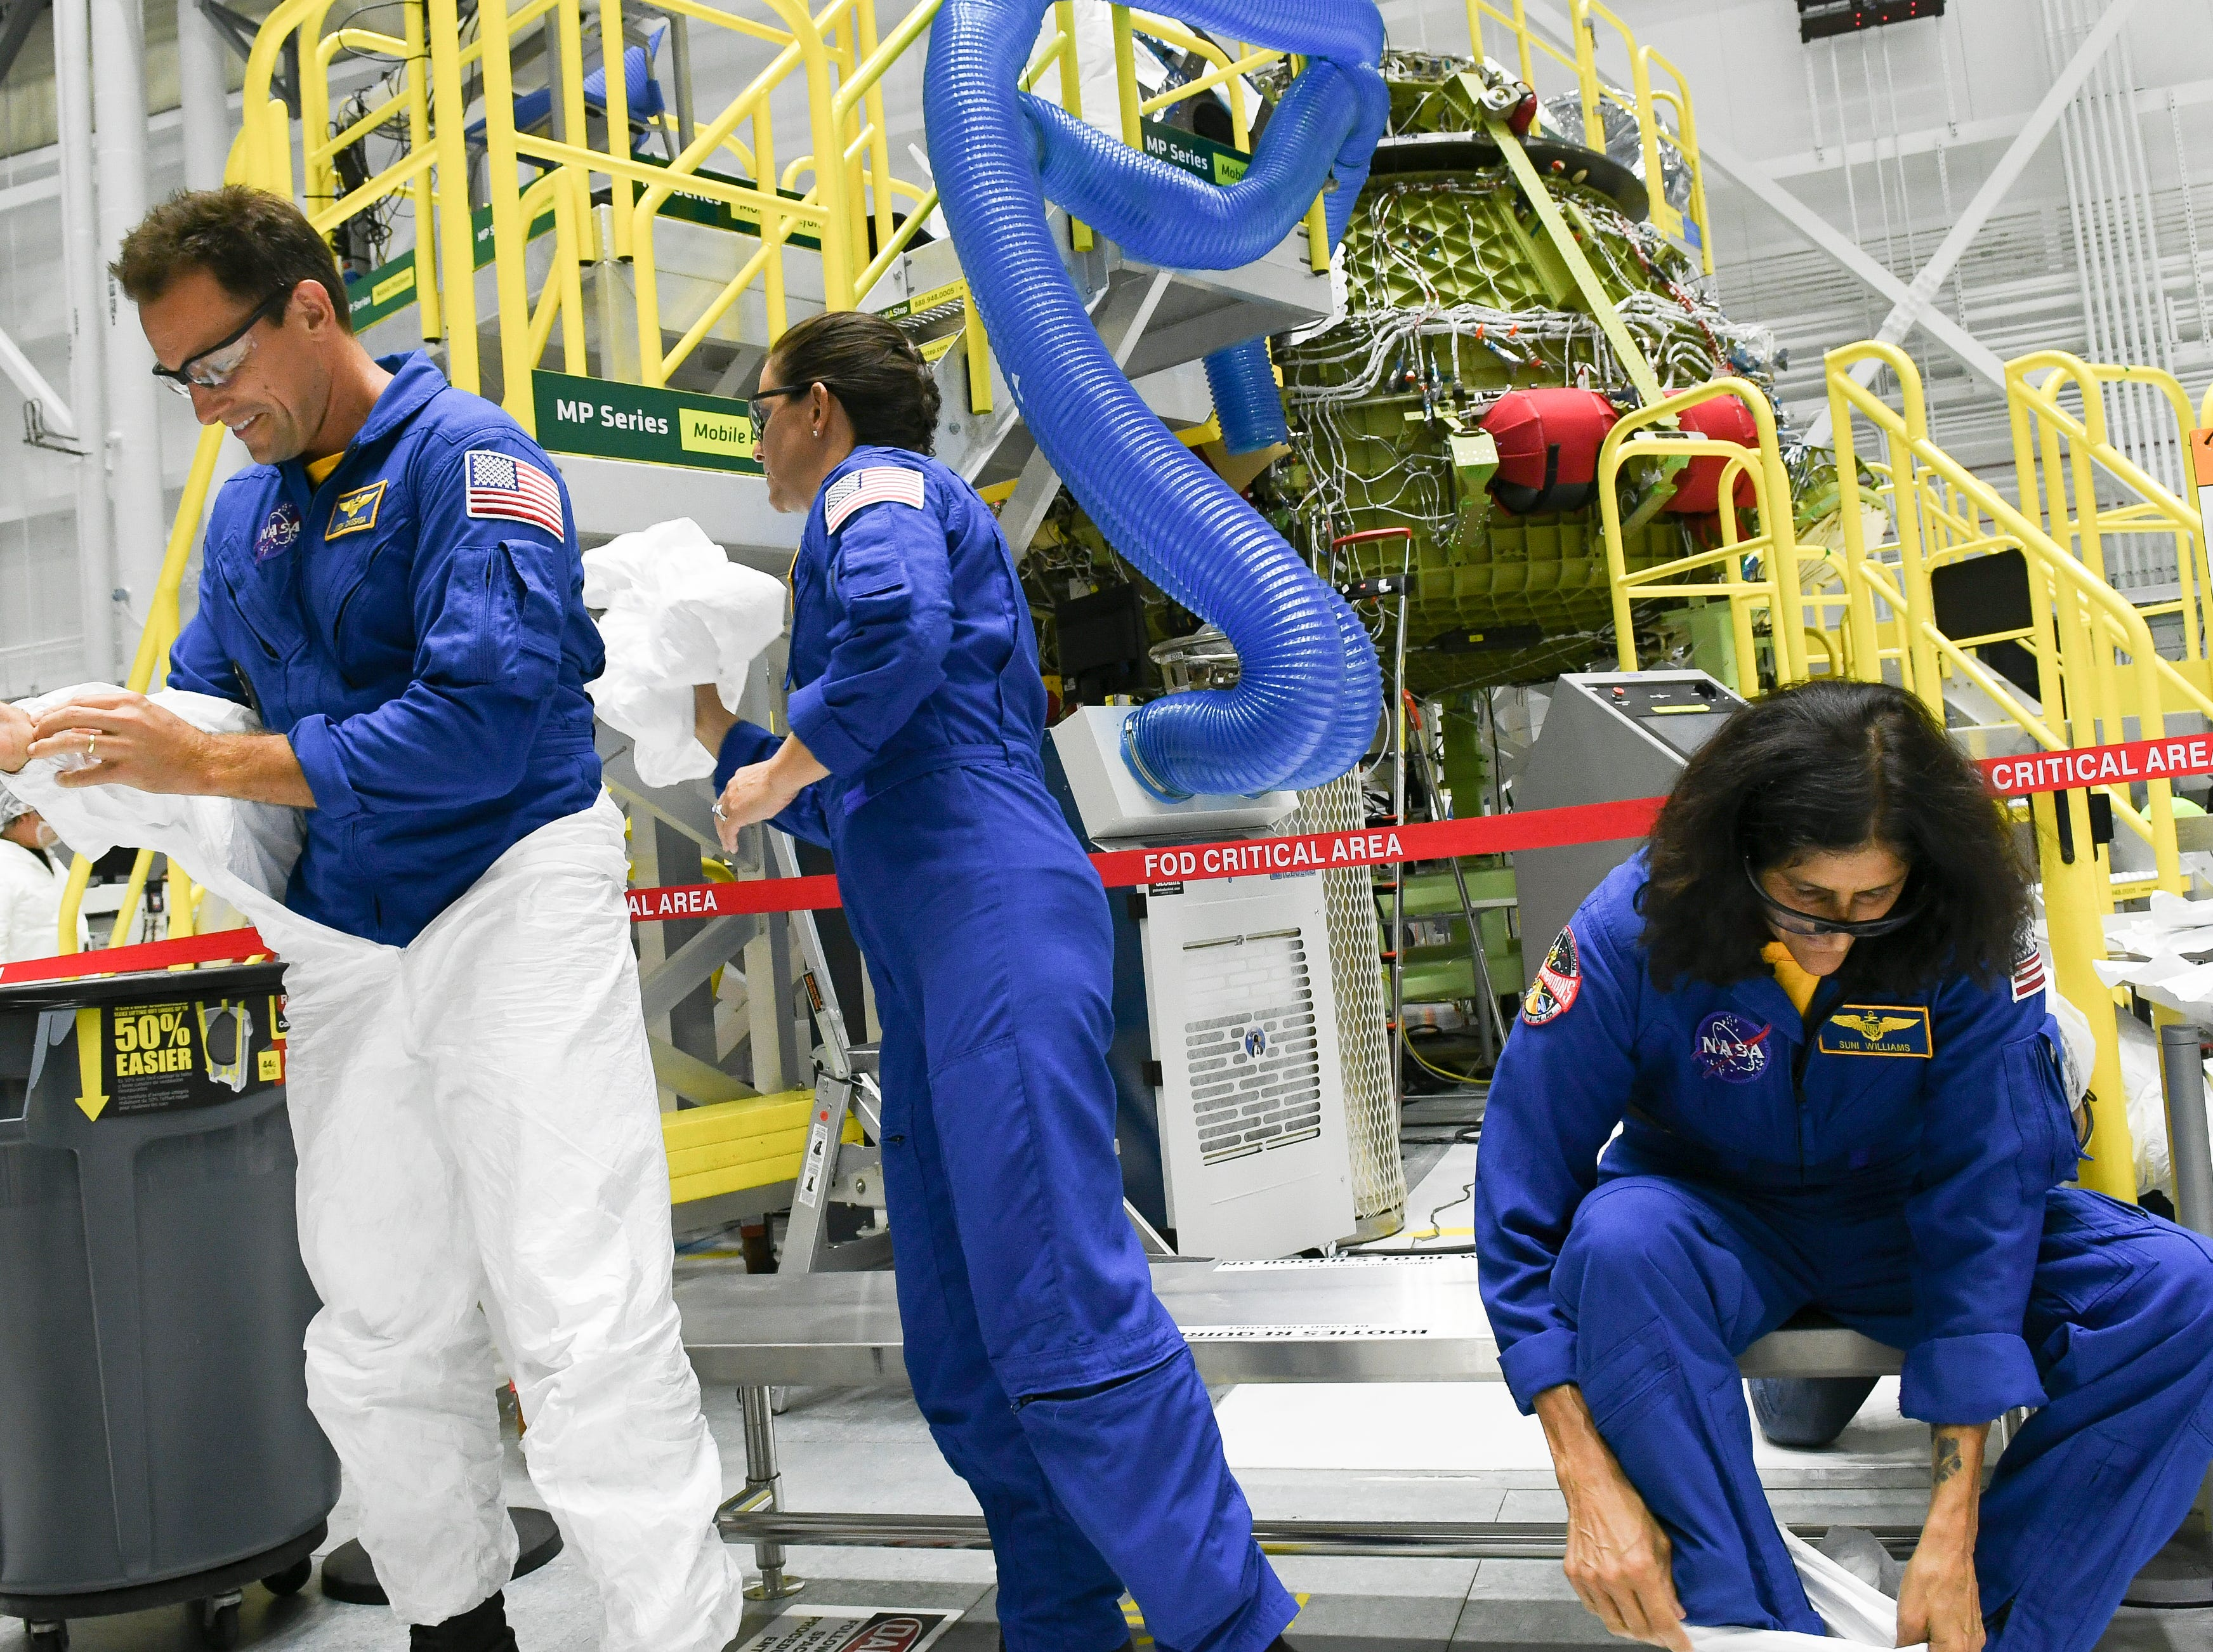 Astronauts Josh Cassada, Nicole Mann and Suni Williams climb out of their protective suits after getting a close look at the Starliner crew test vehicle in the Boeing  manufacturing facility at Kennedy Space Center.